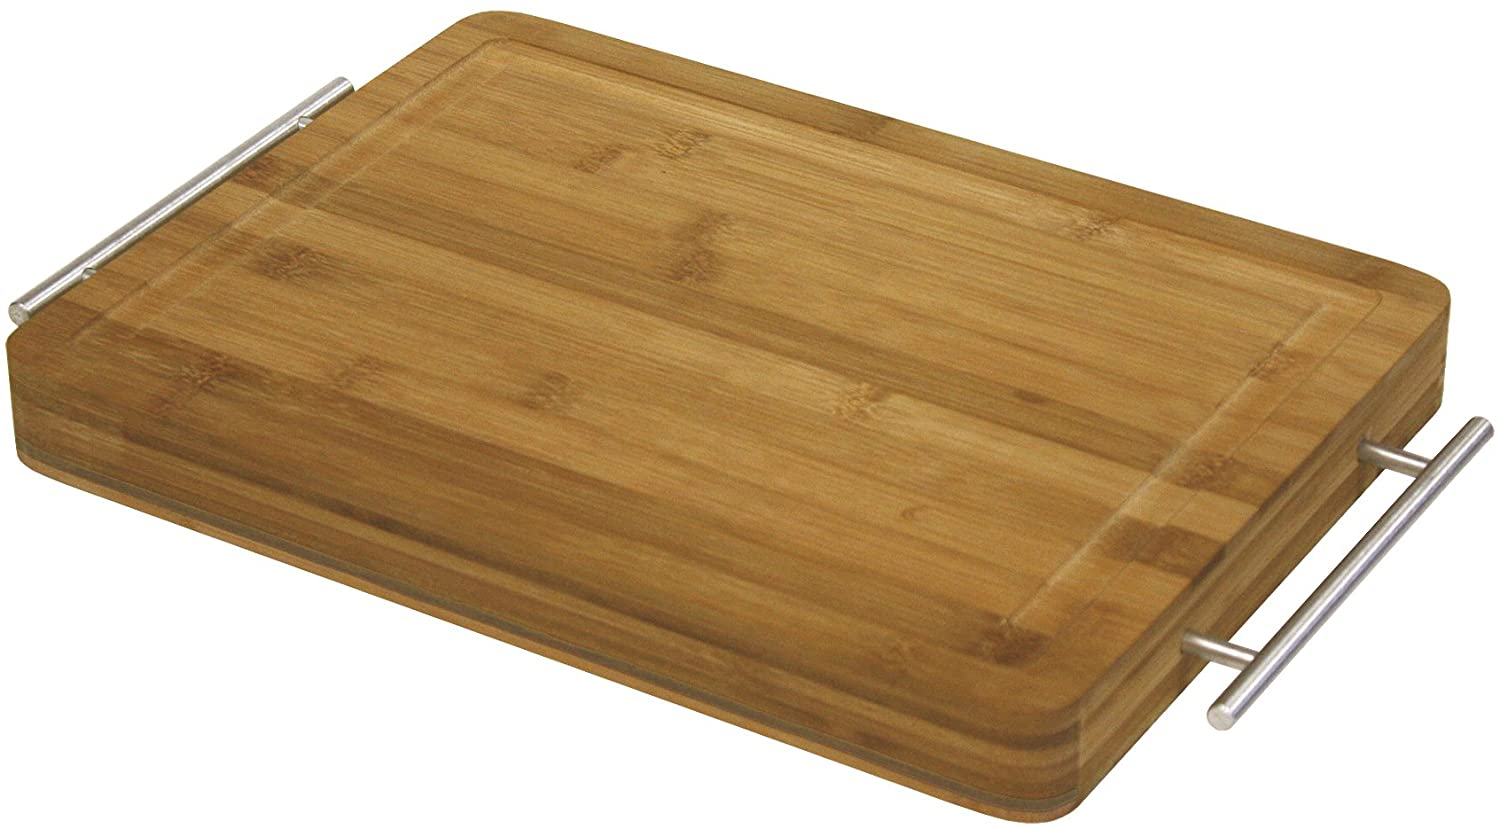 Simply Bamboo Wood Cutting and Serving Board with Metal Handles | Chopping Board | Butcher Block | Carving Fruits, Meats, Veggies - 18